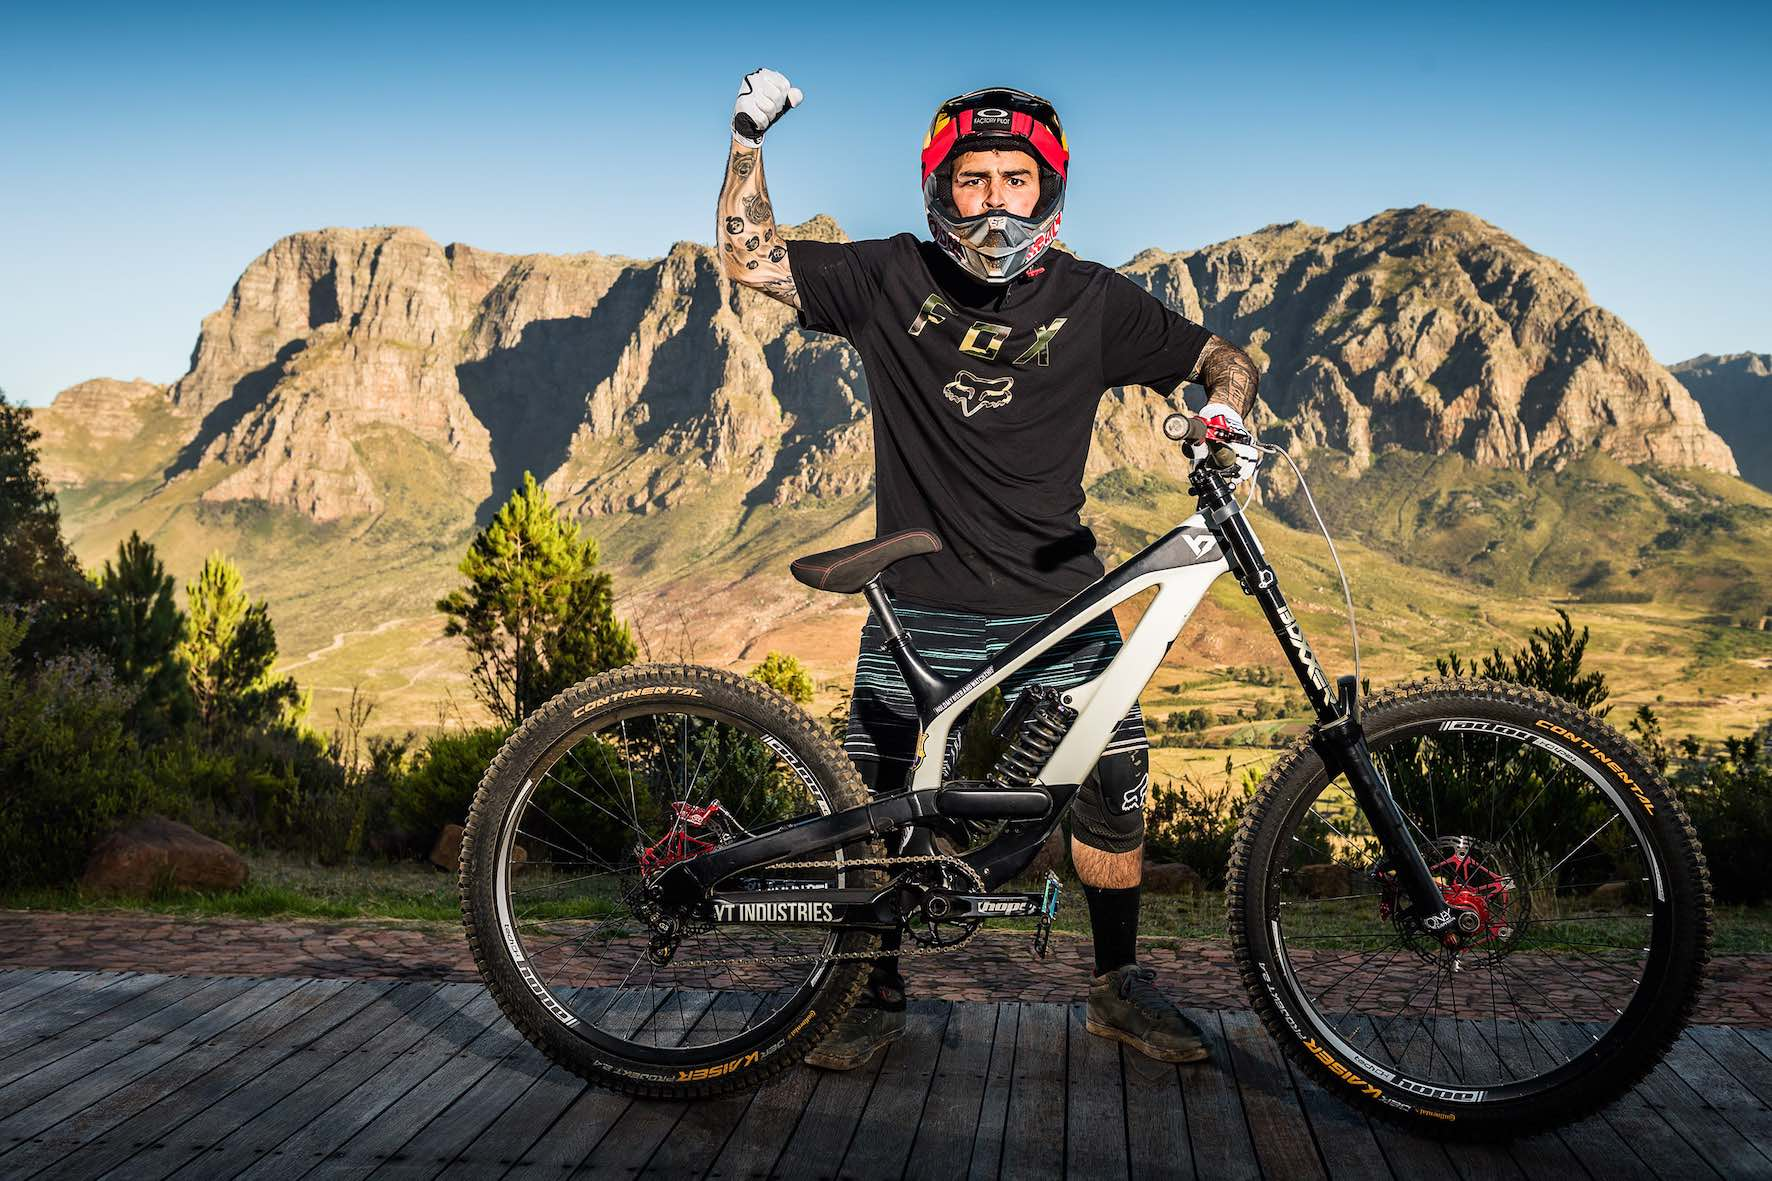 Interview with Freeride MTB Master Andreu Lacondeguy